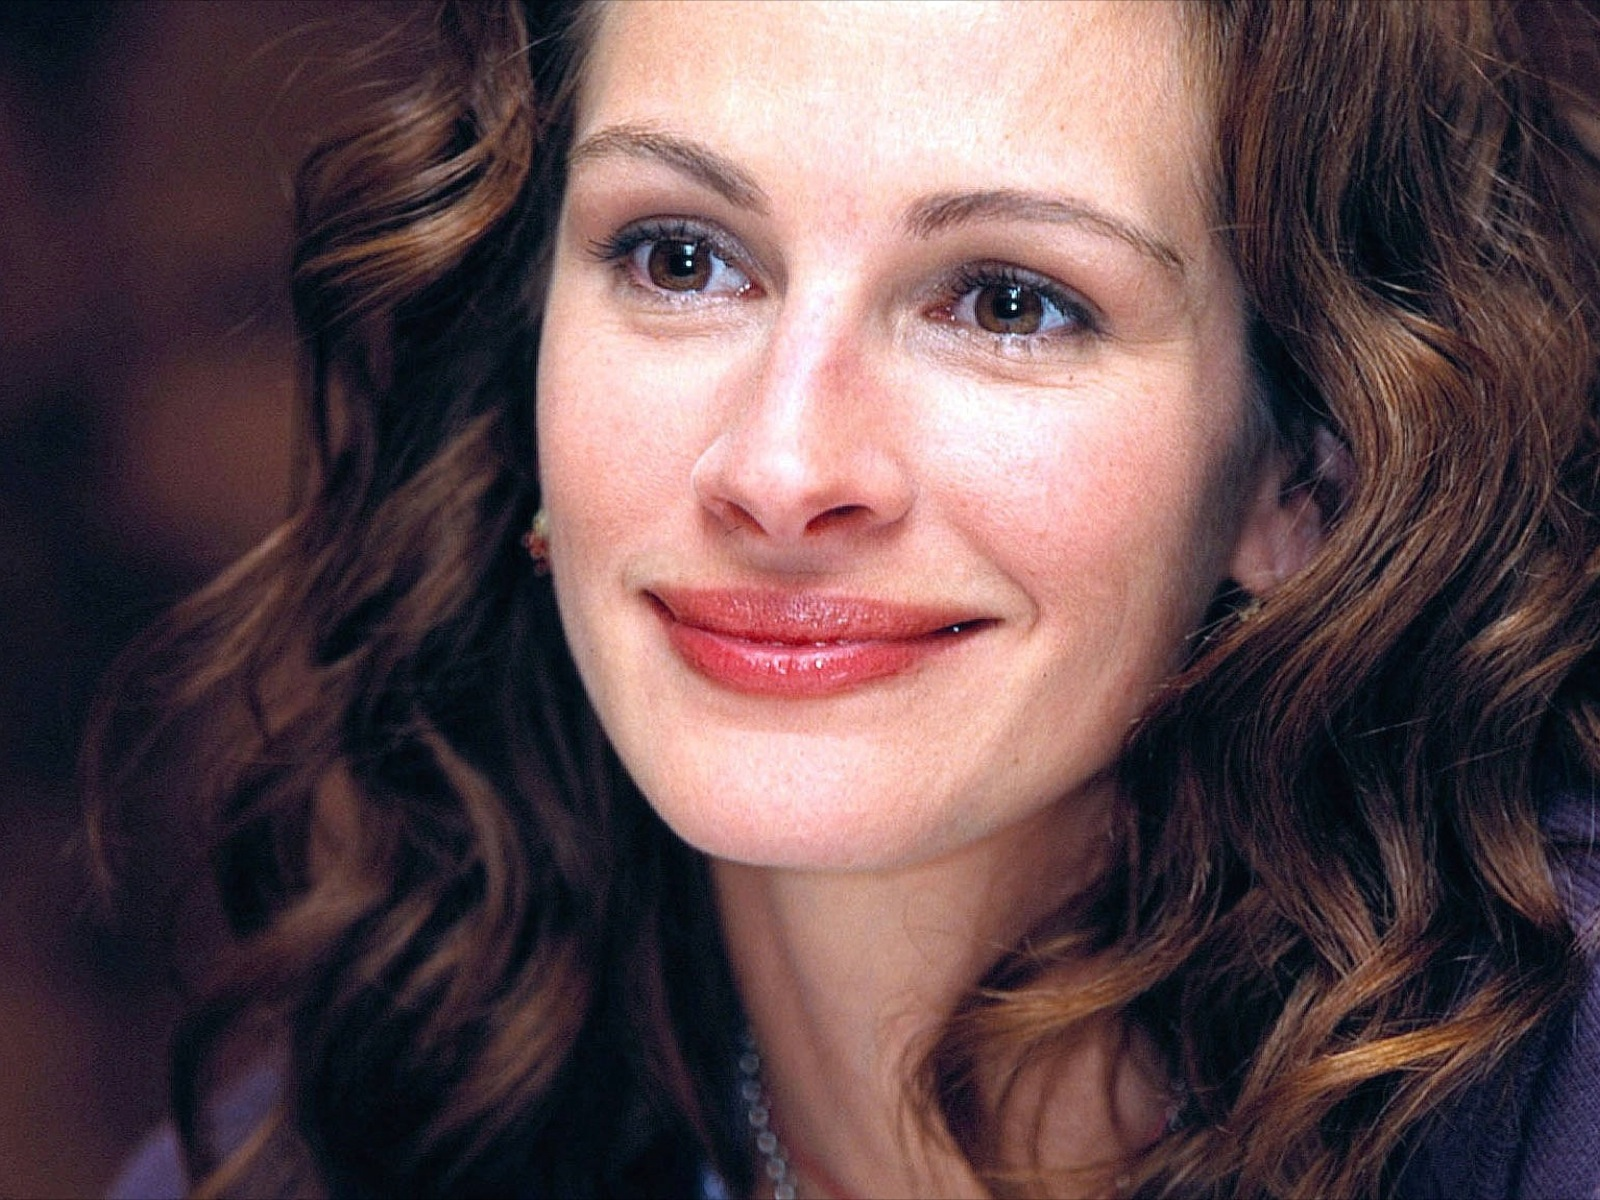 stunning beauty julia roberts face desktop wide wallpaper